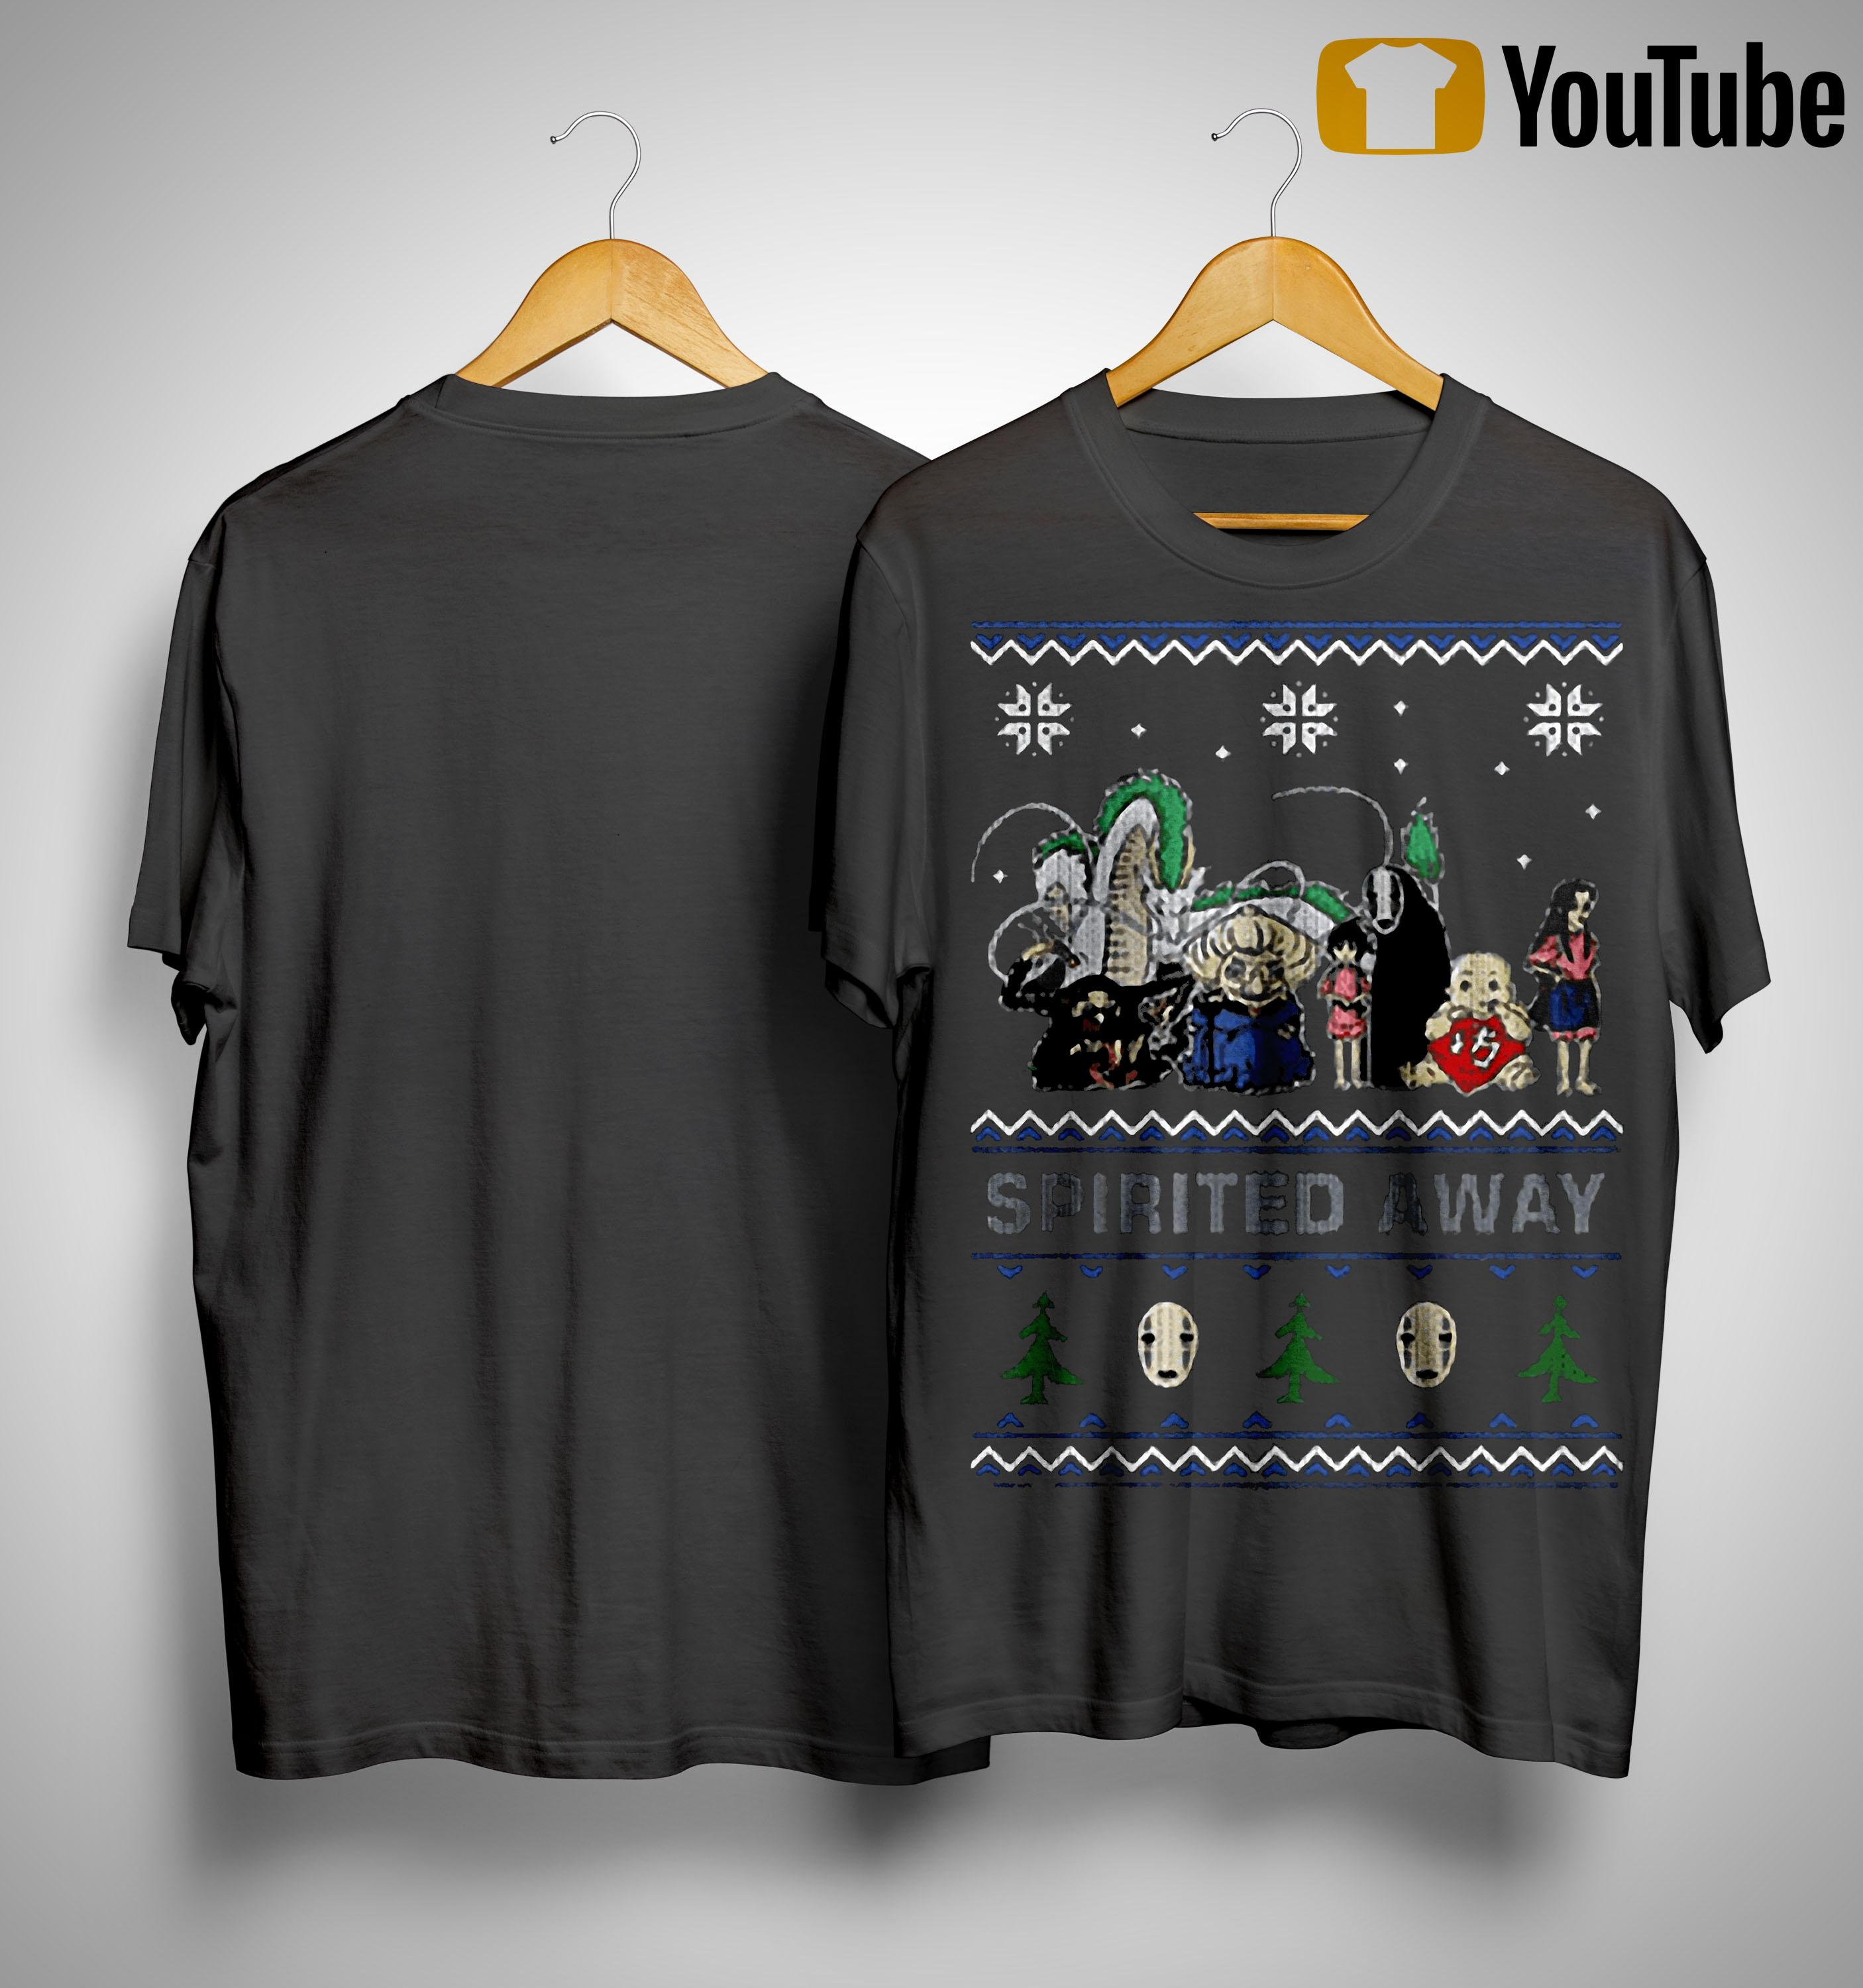 Spirited Away Ugly Christmas Shirt